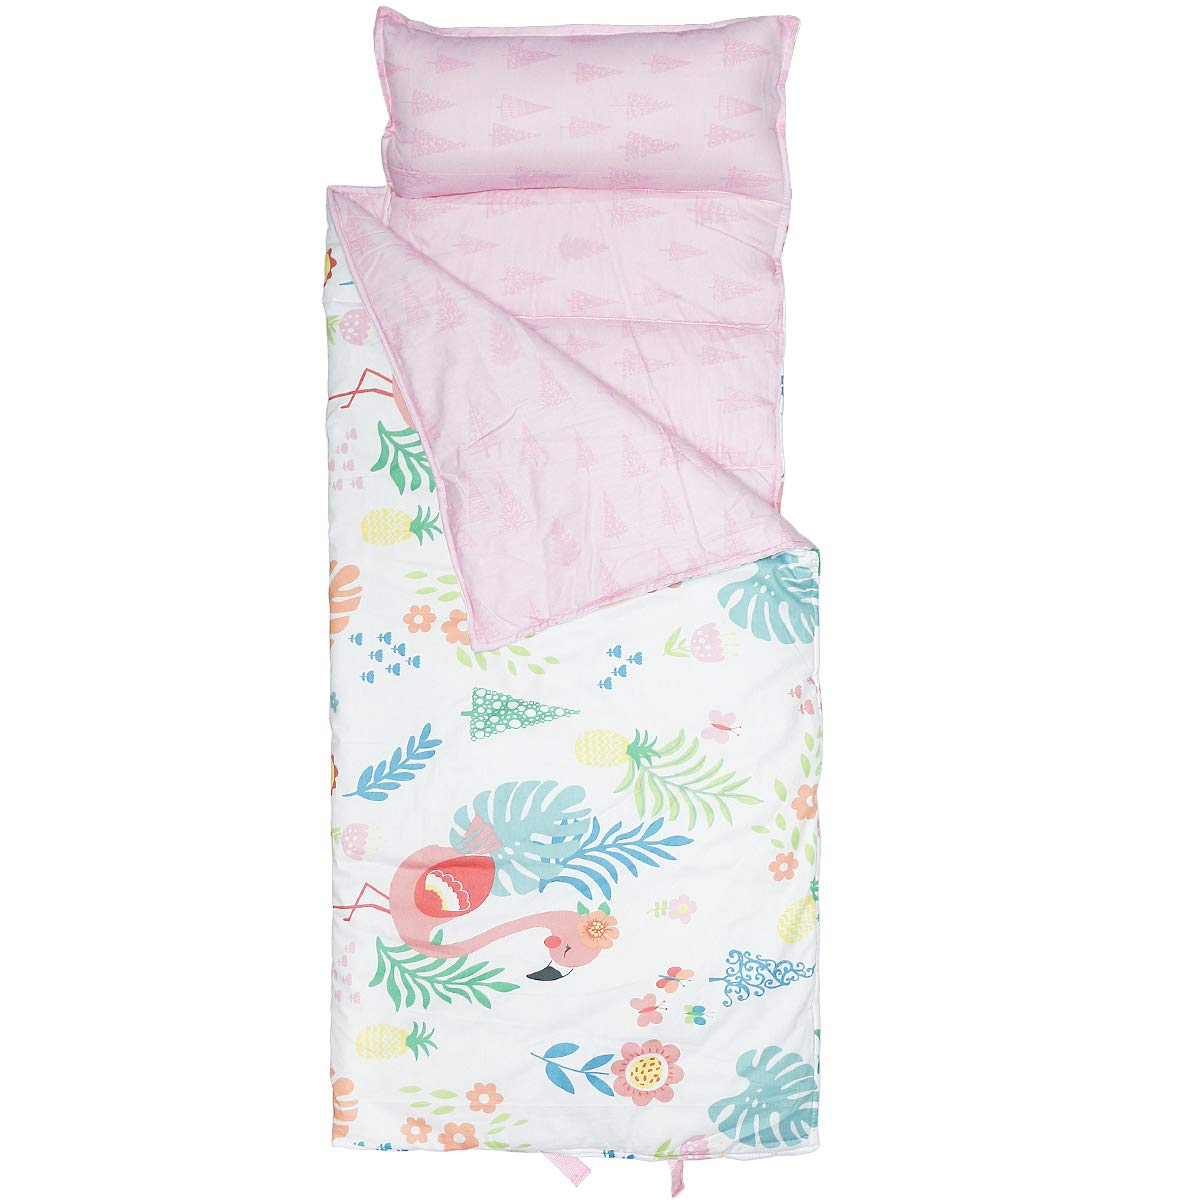 Hi Sprout Kids Toddle Lightweight and Soft Nap Mat (Flamingo) by Hi Sprout